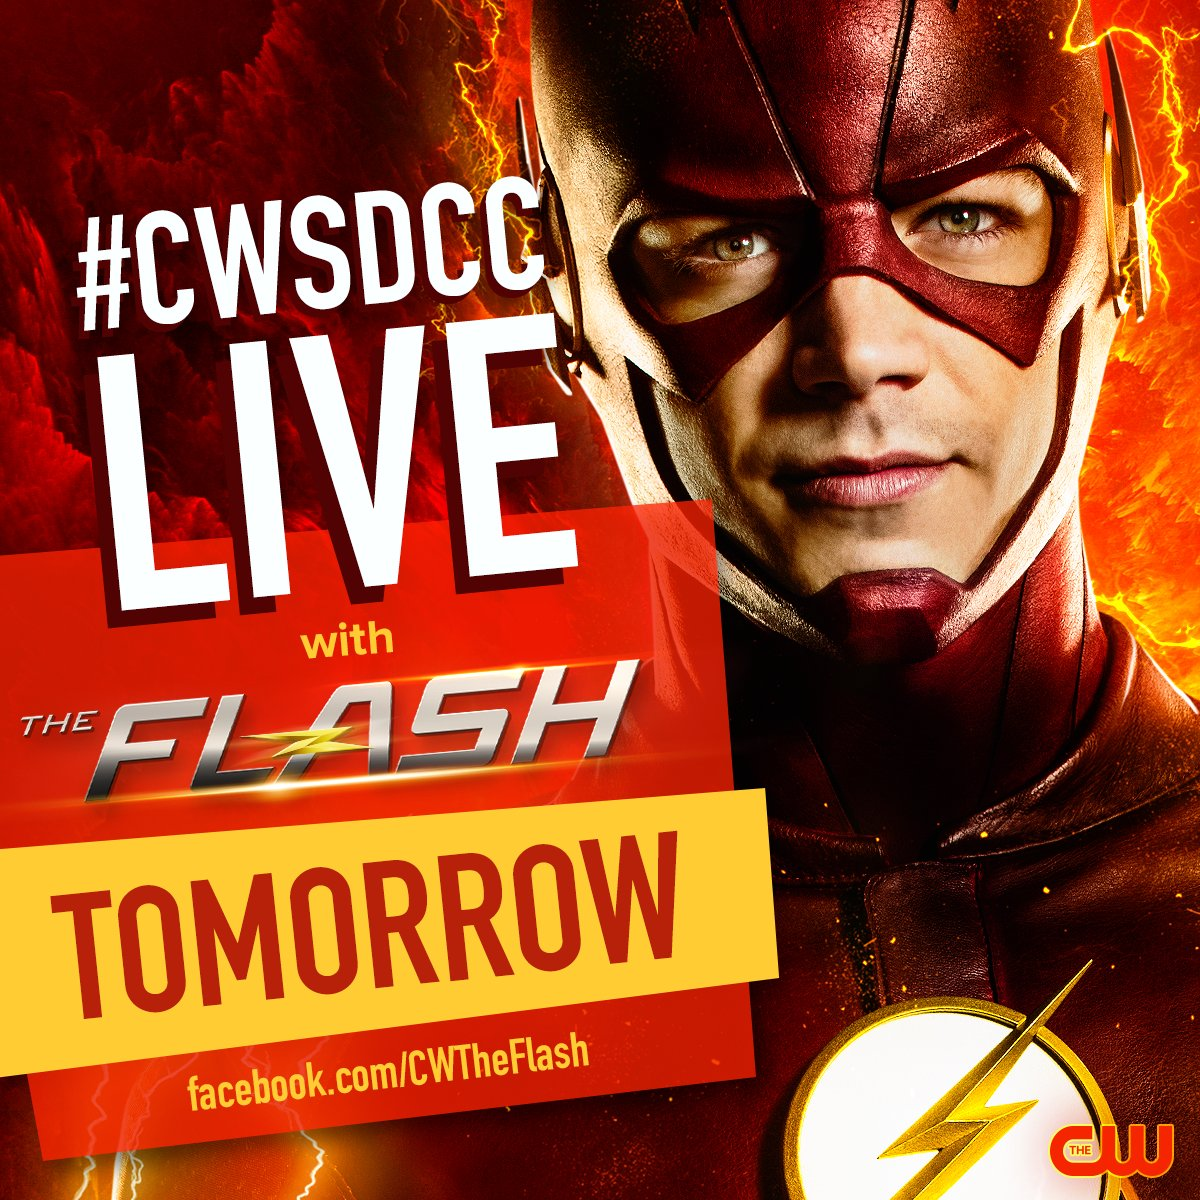 See the cast of #TheFlash LIVE at #CWSDCC tomorrow on our Facebook page